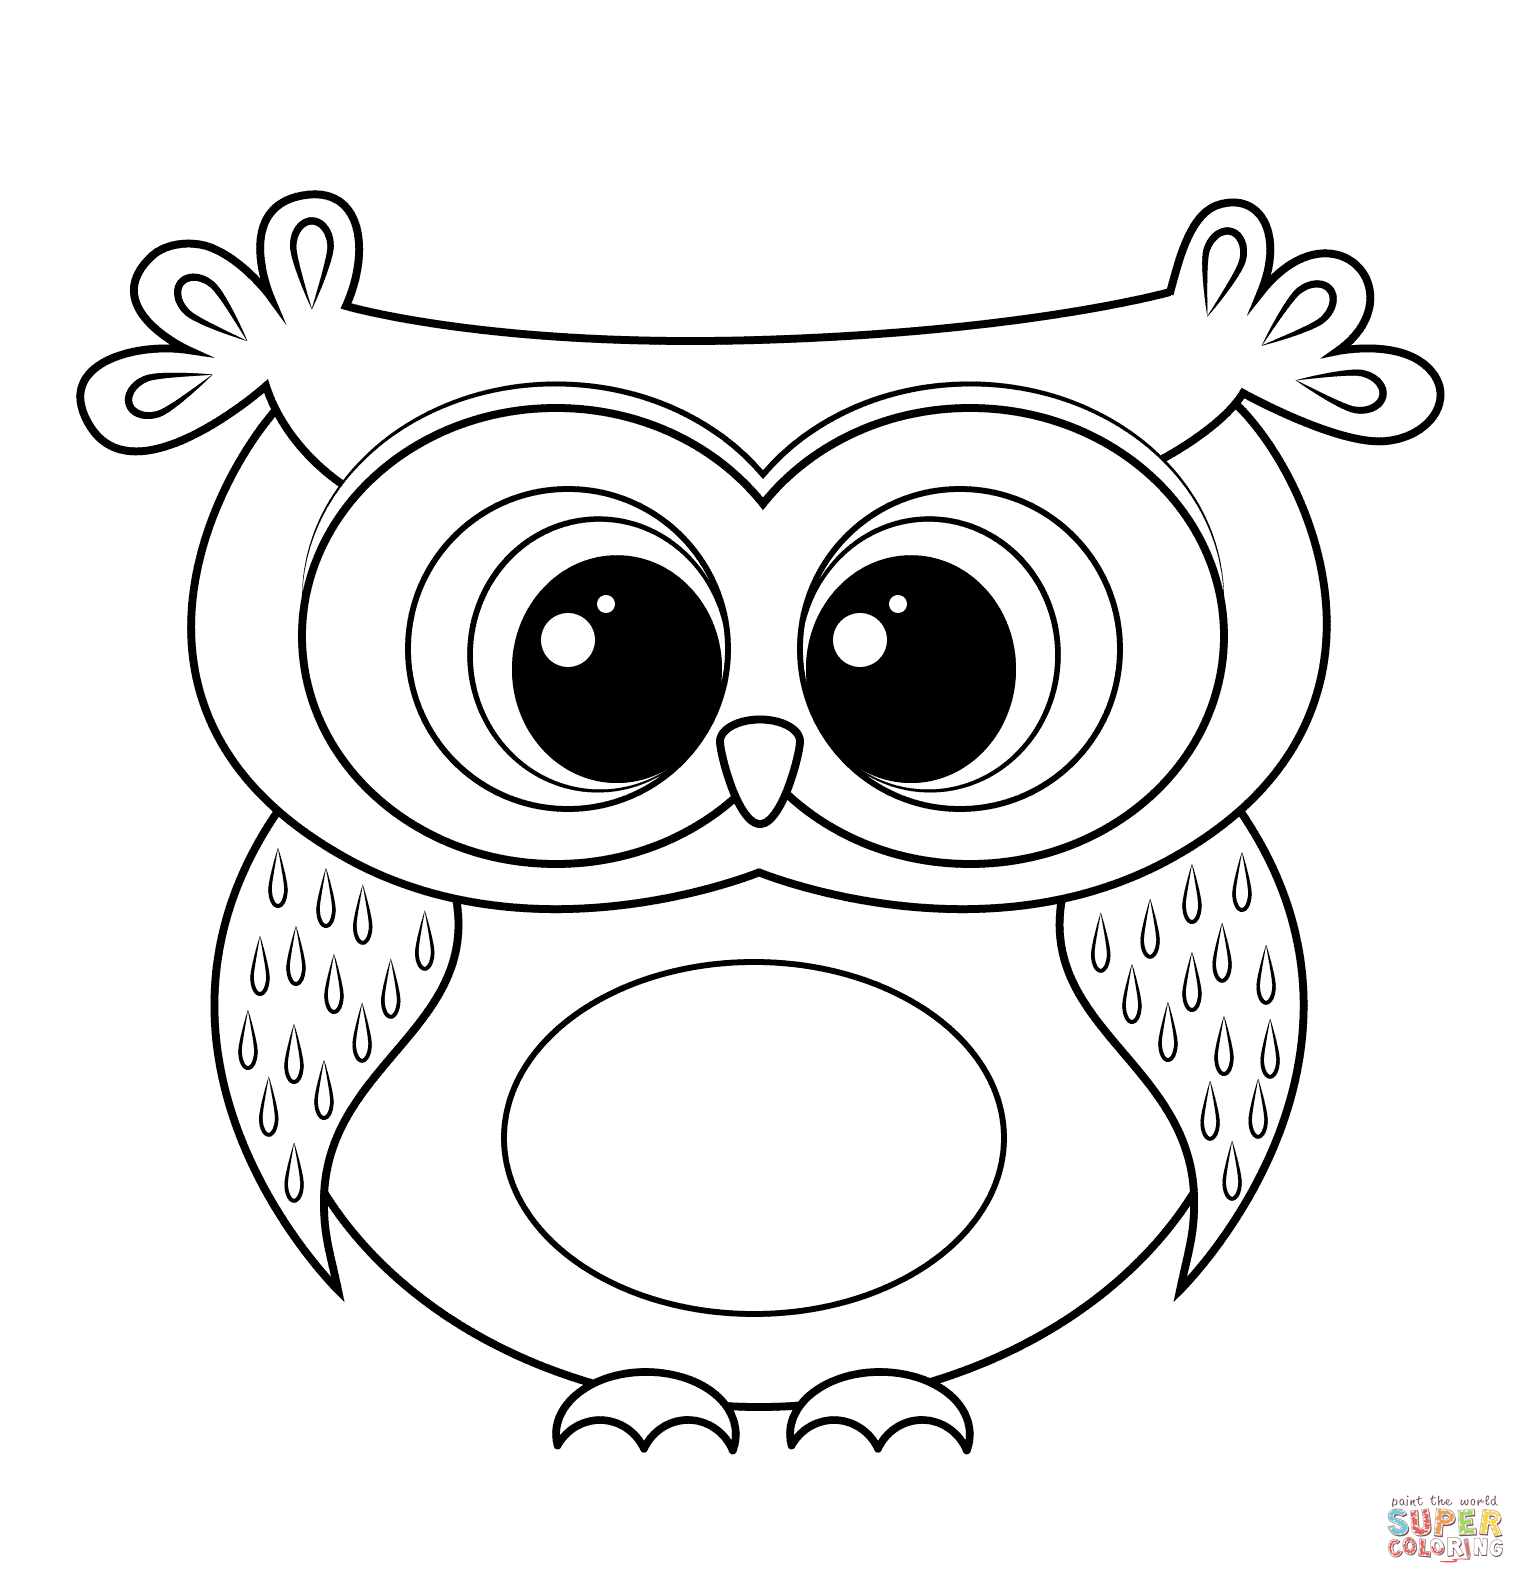 owl coloring picture cartoon owl coloring page free printable coloring pages coloring picture owl